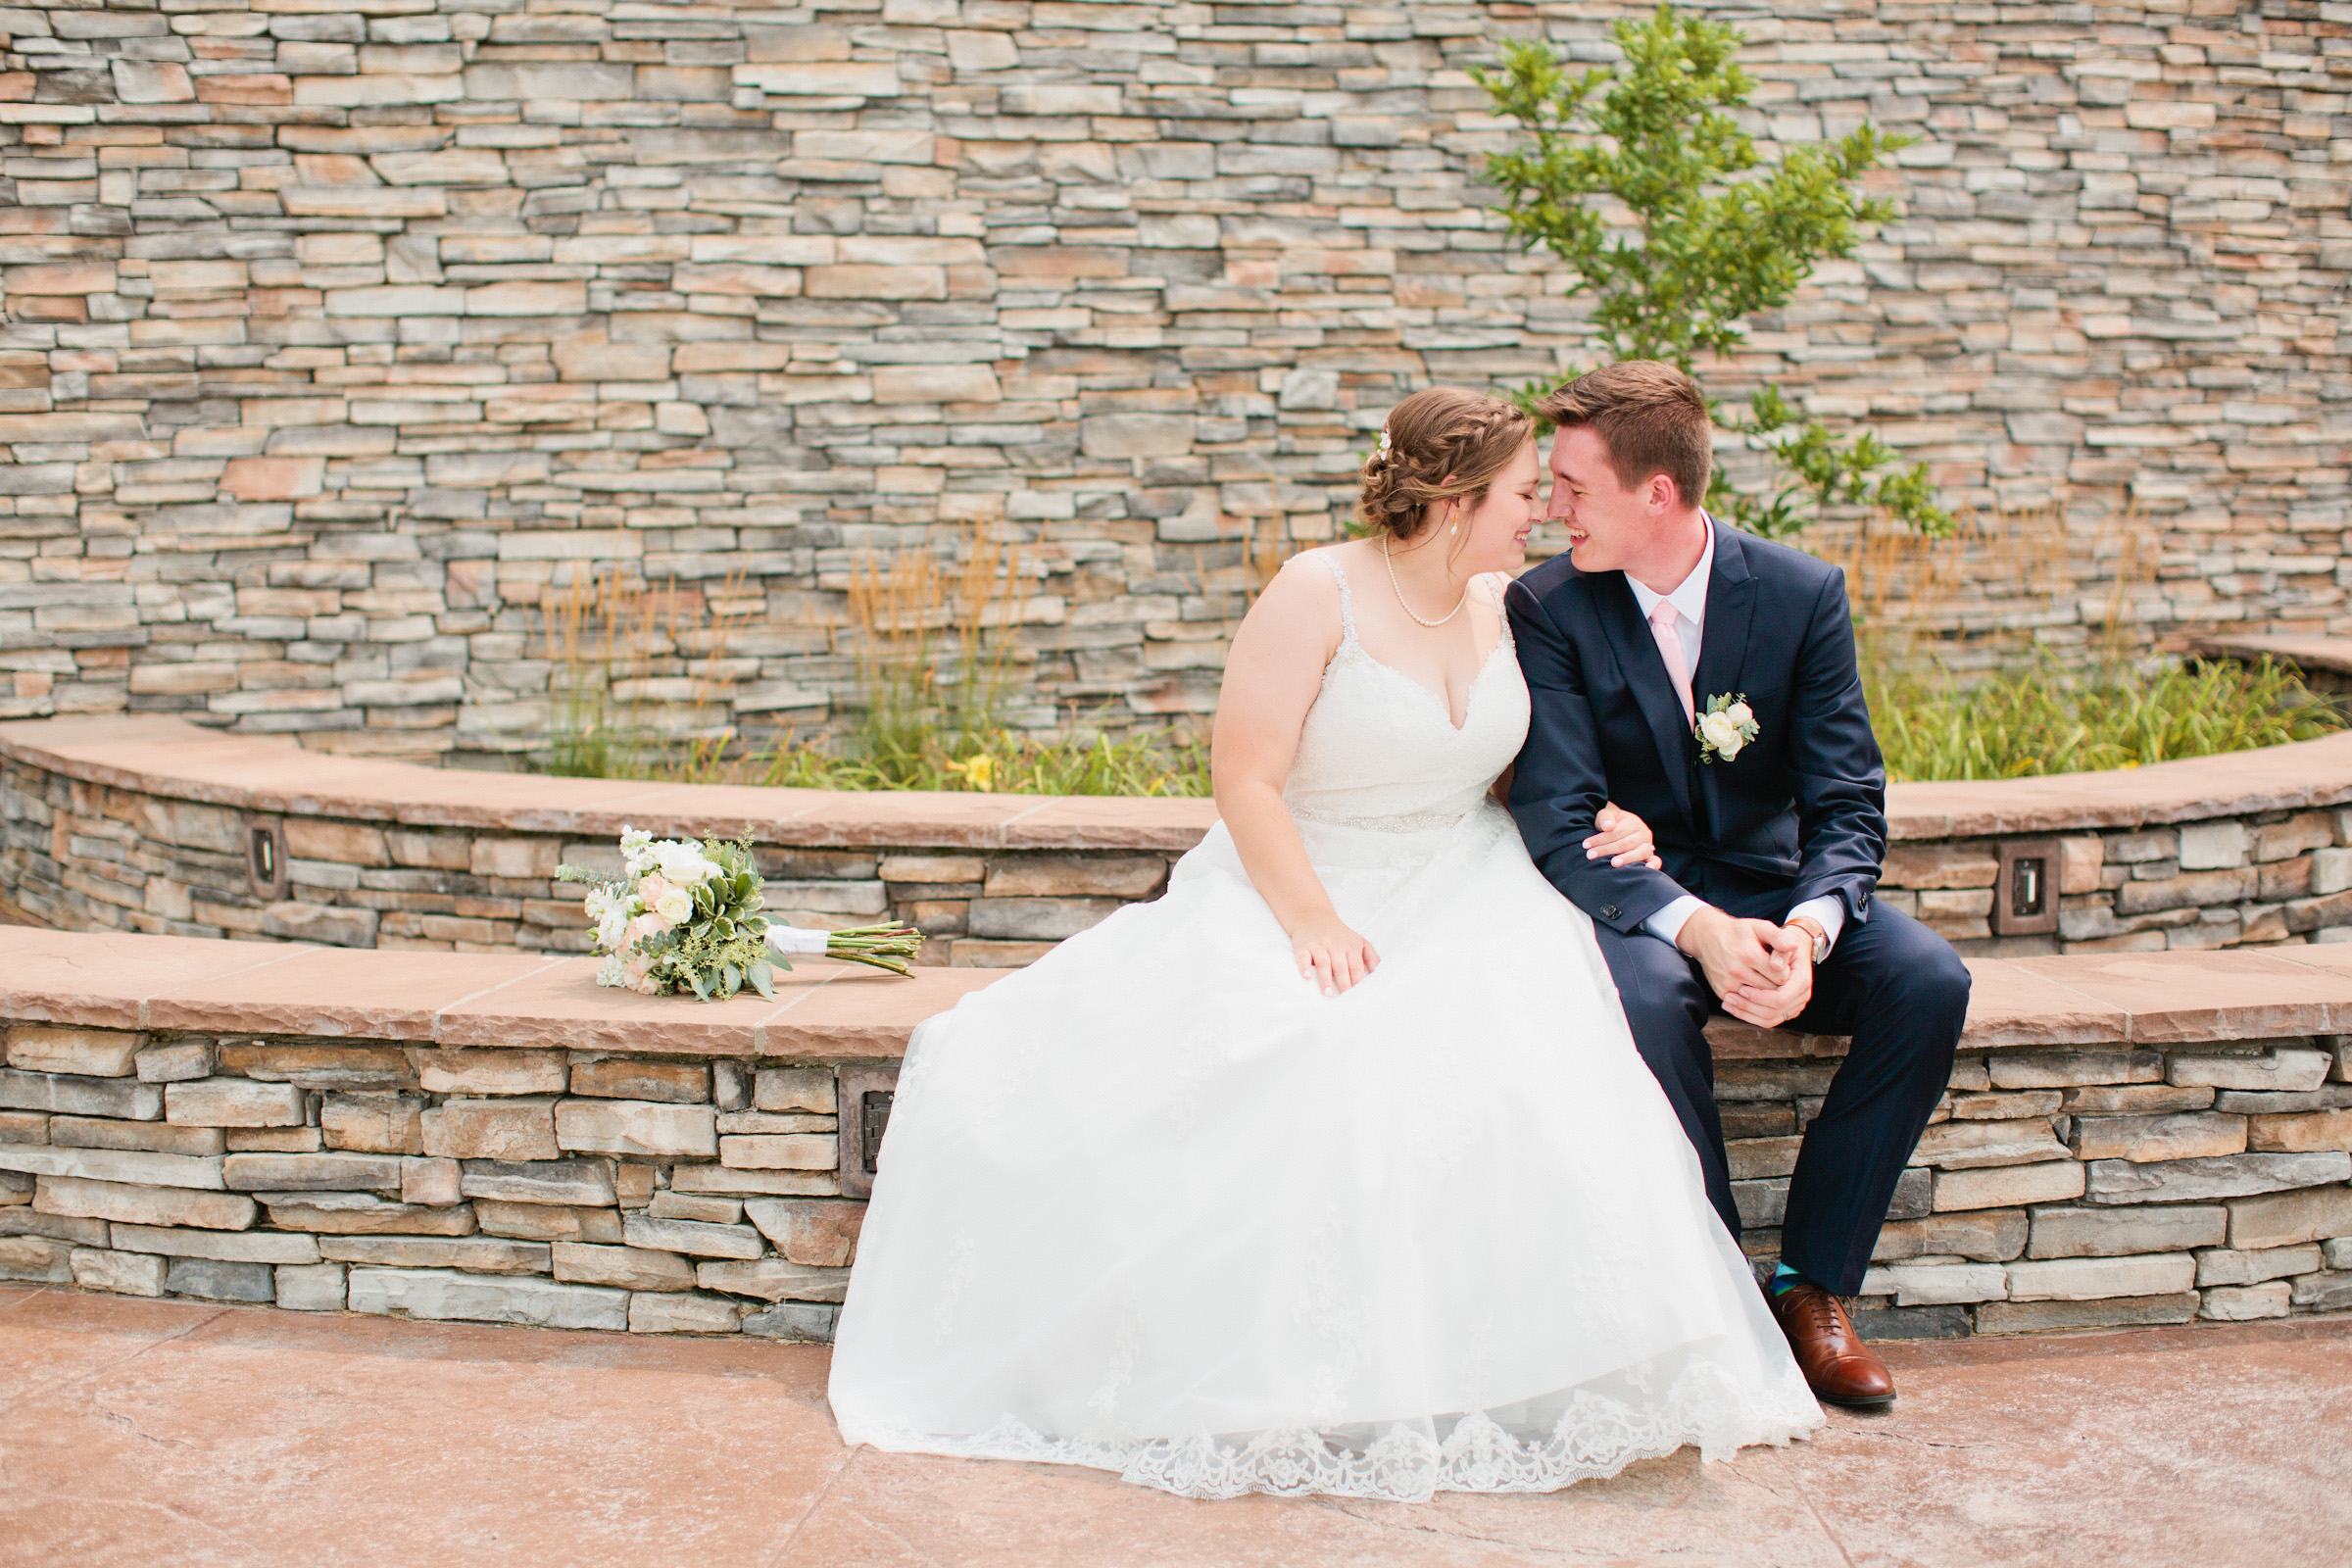 stone wedding venues with green trees